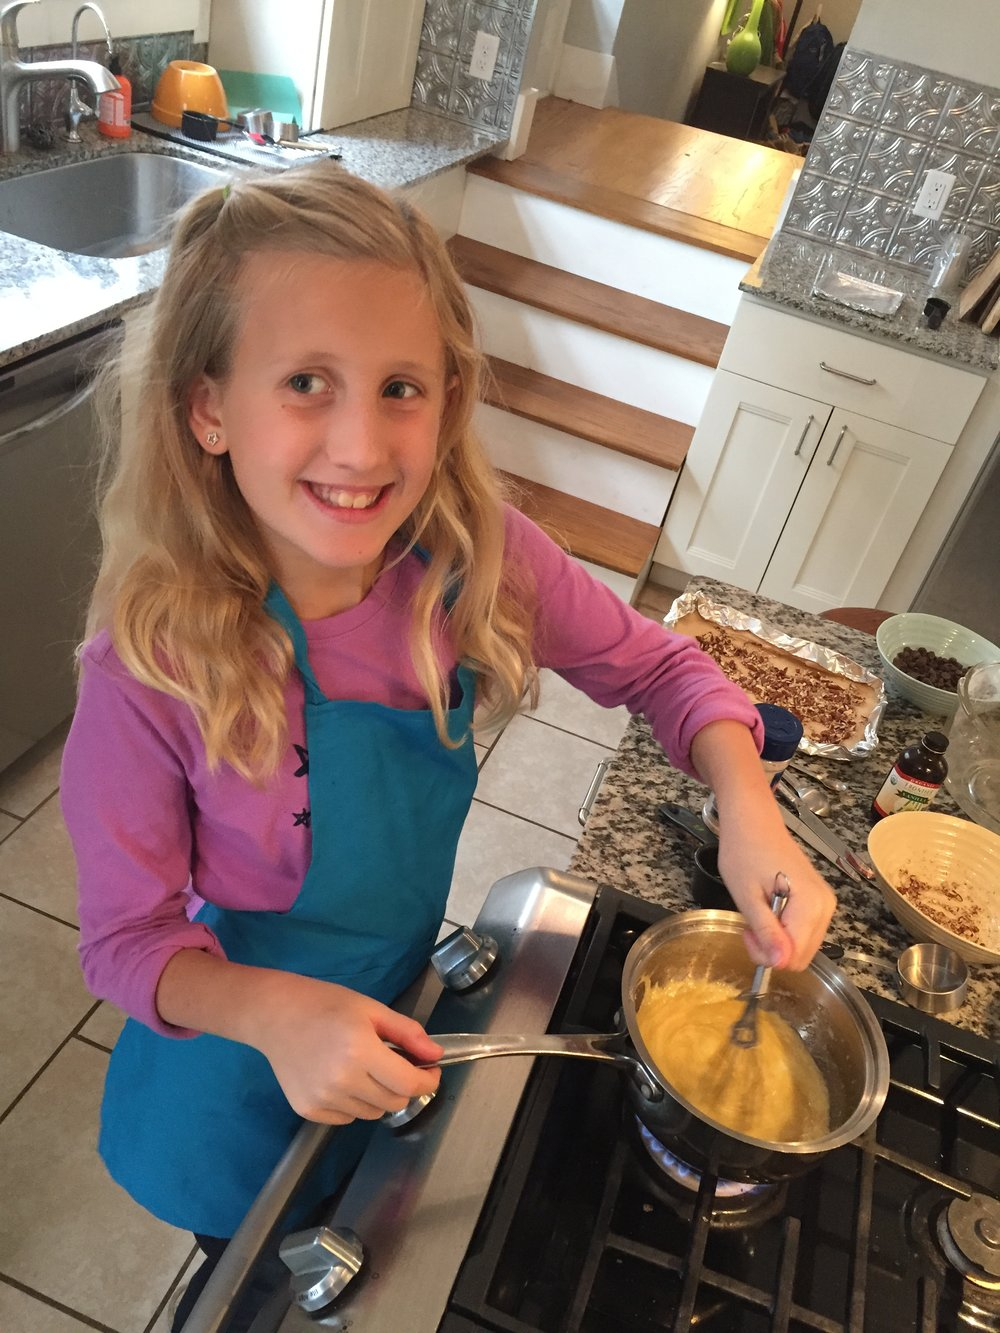 Berklee stirring up her toffee!